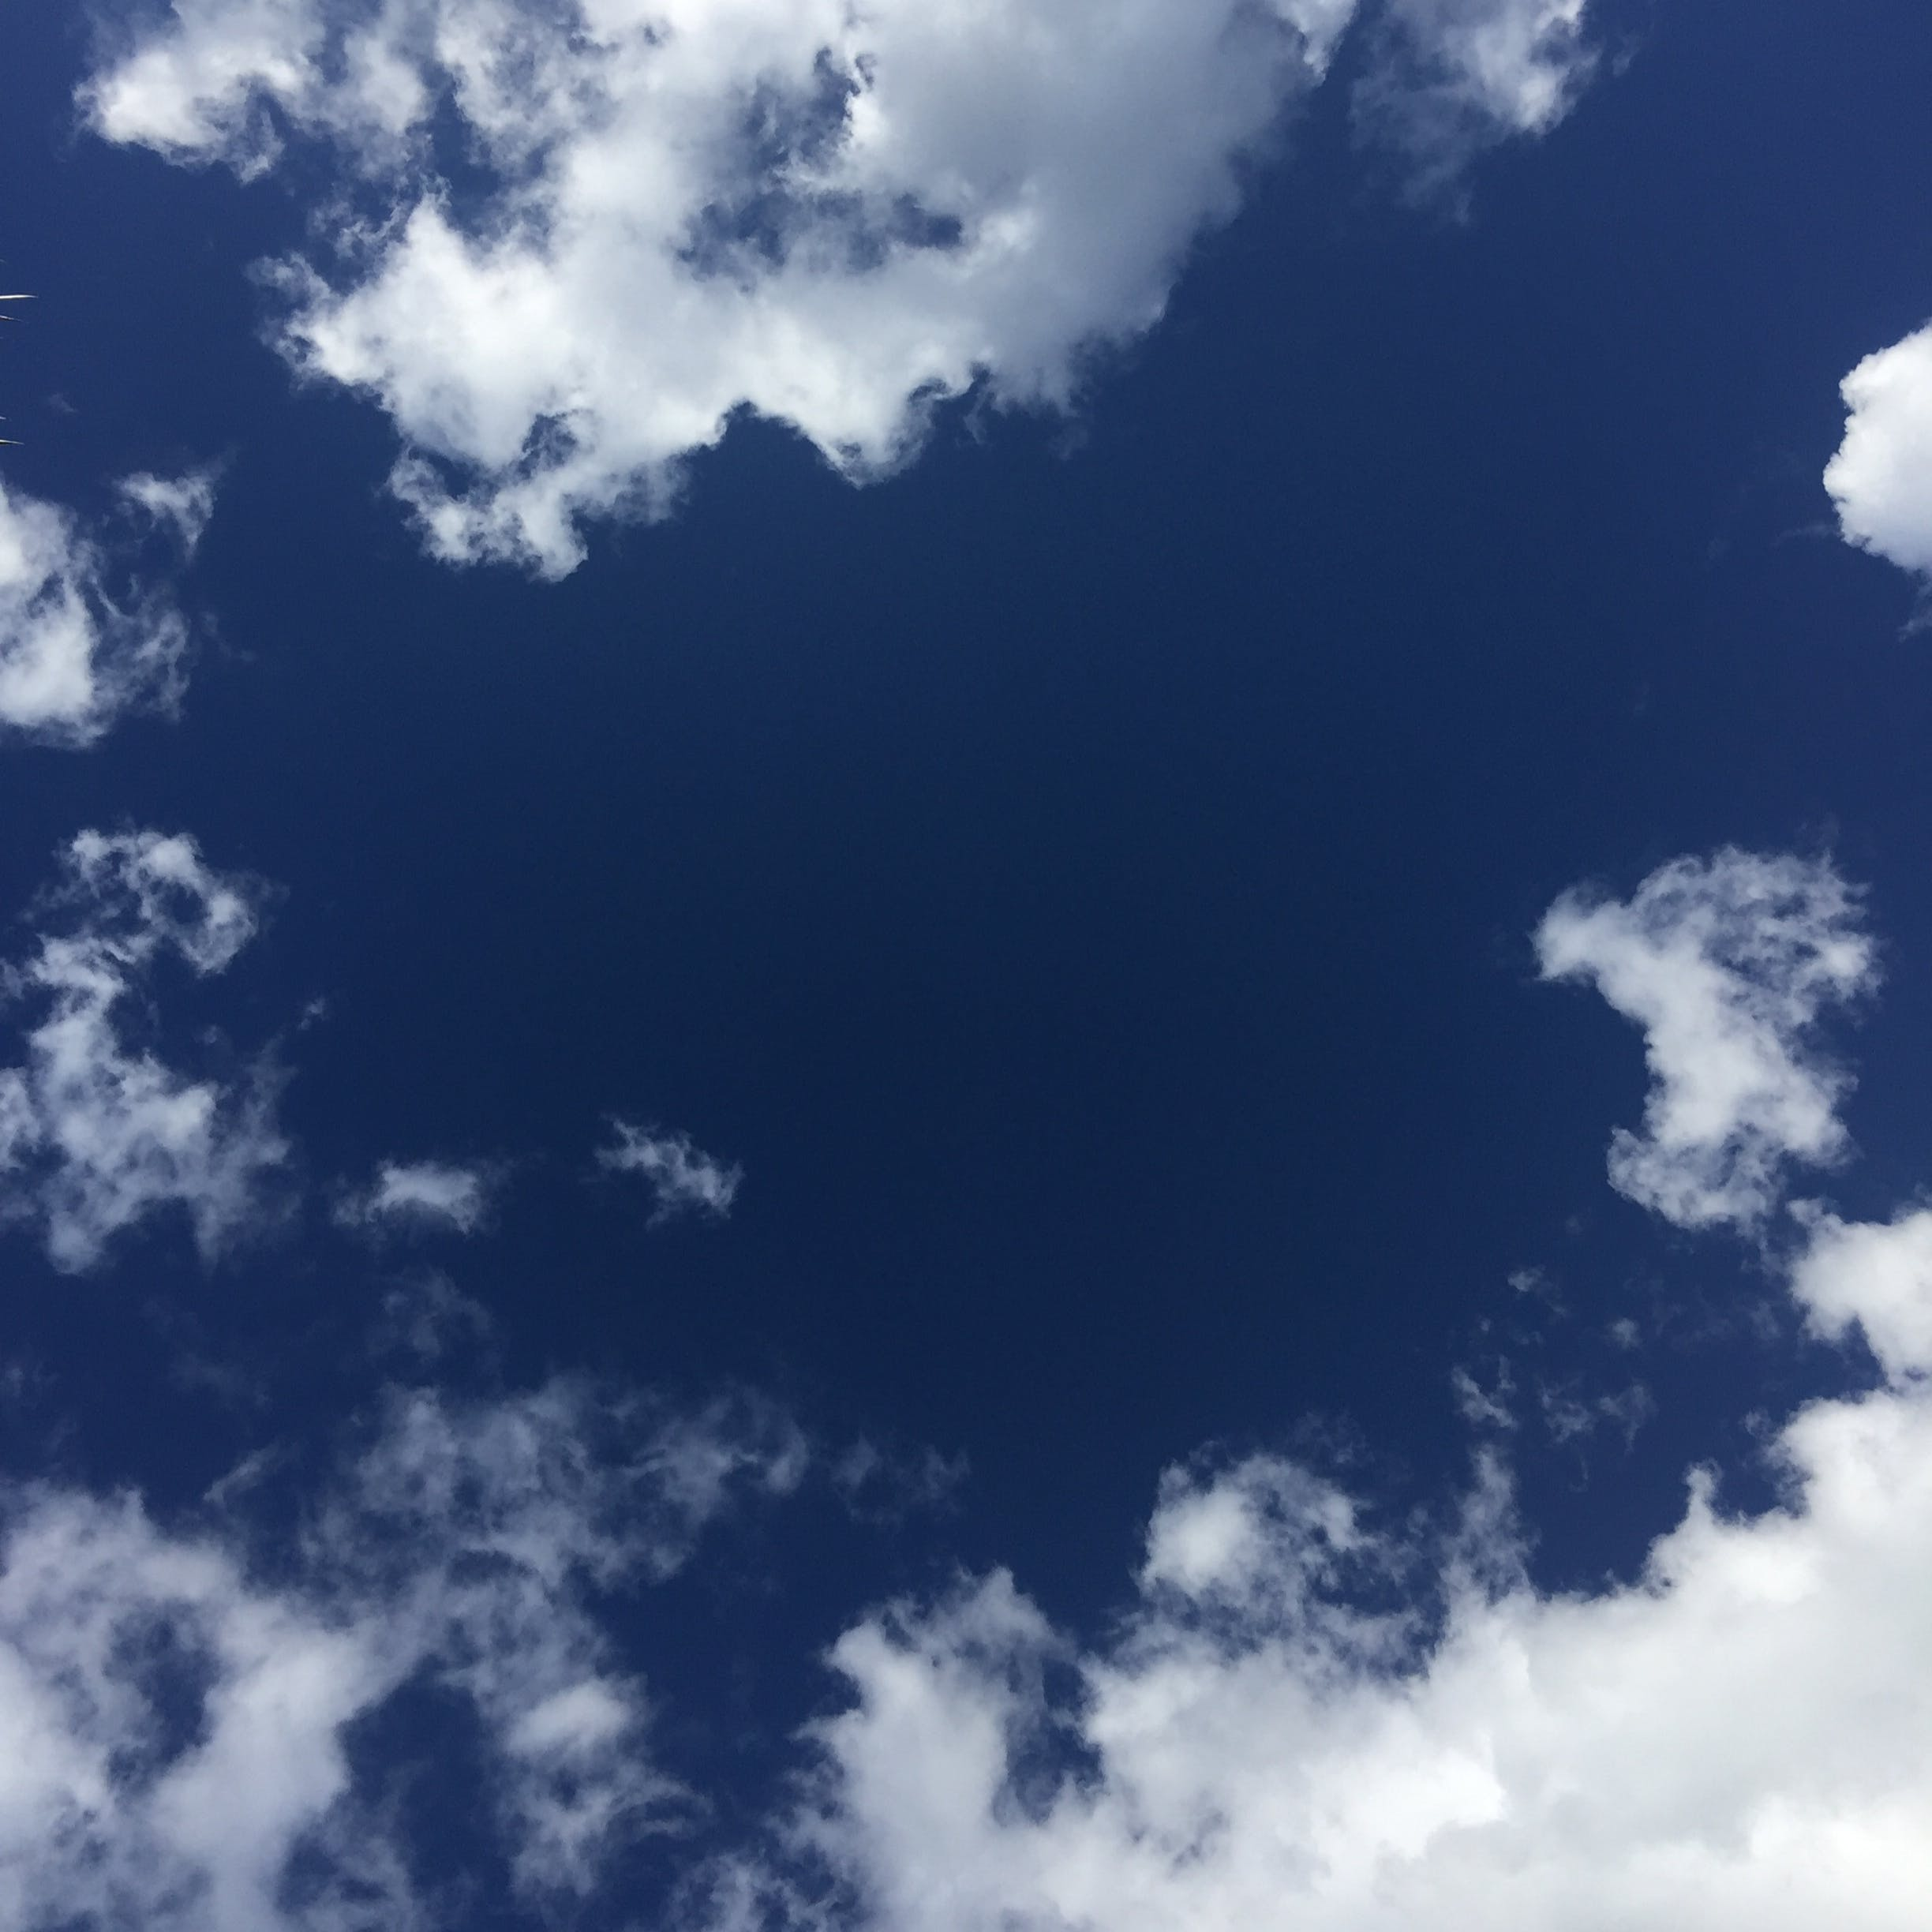 Low-angle Photography of Clouds